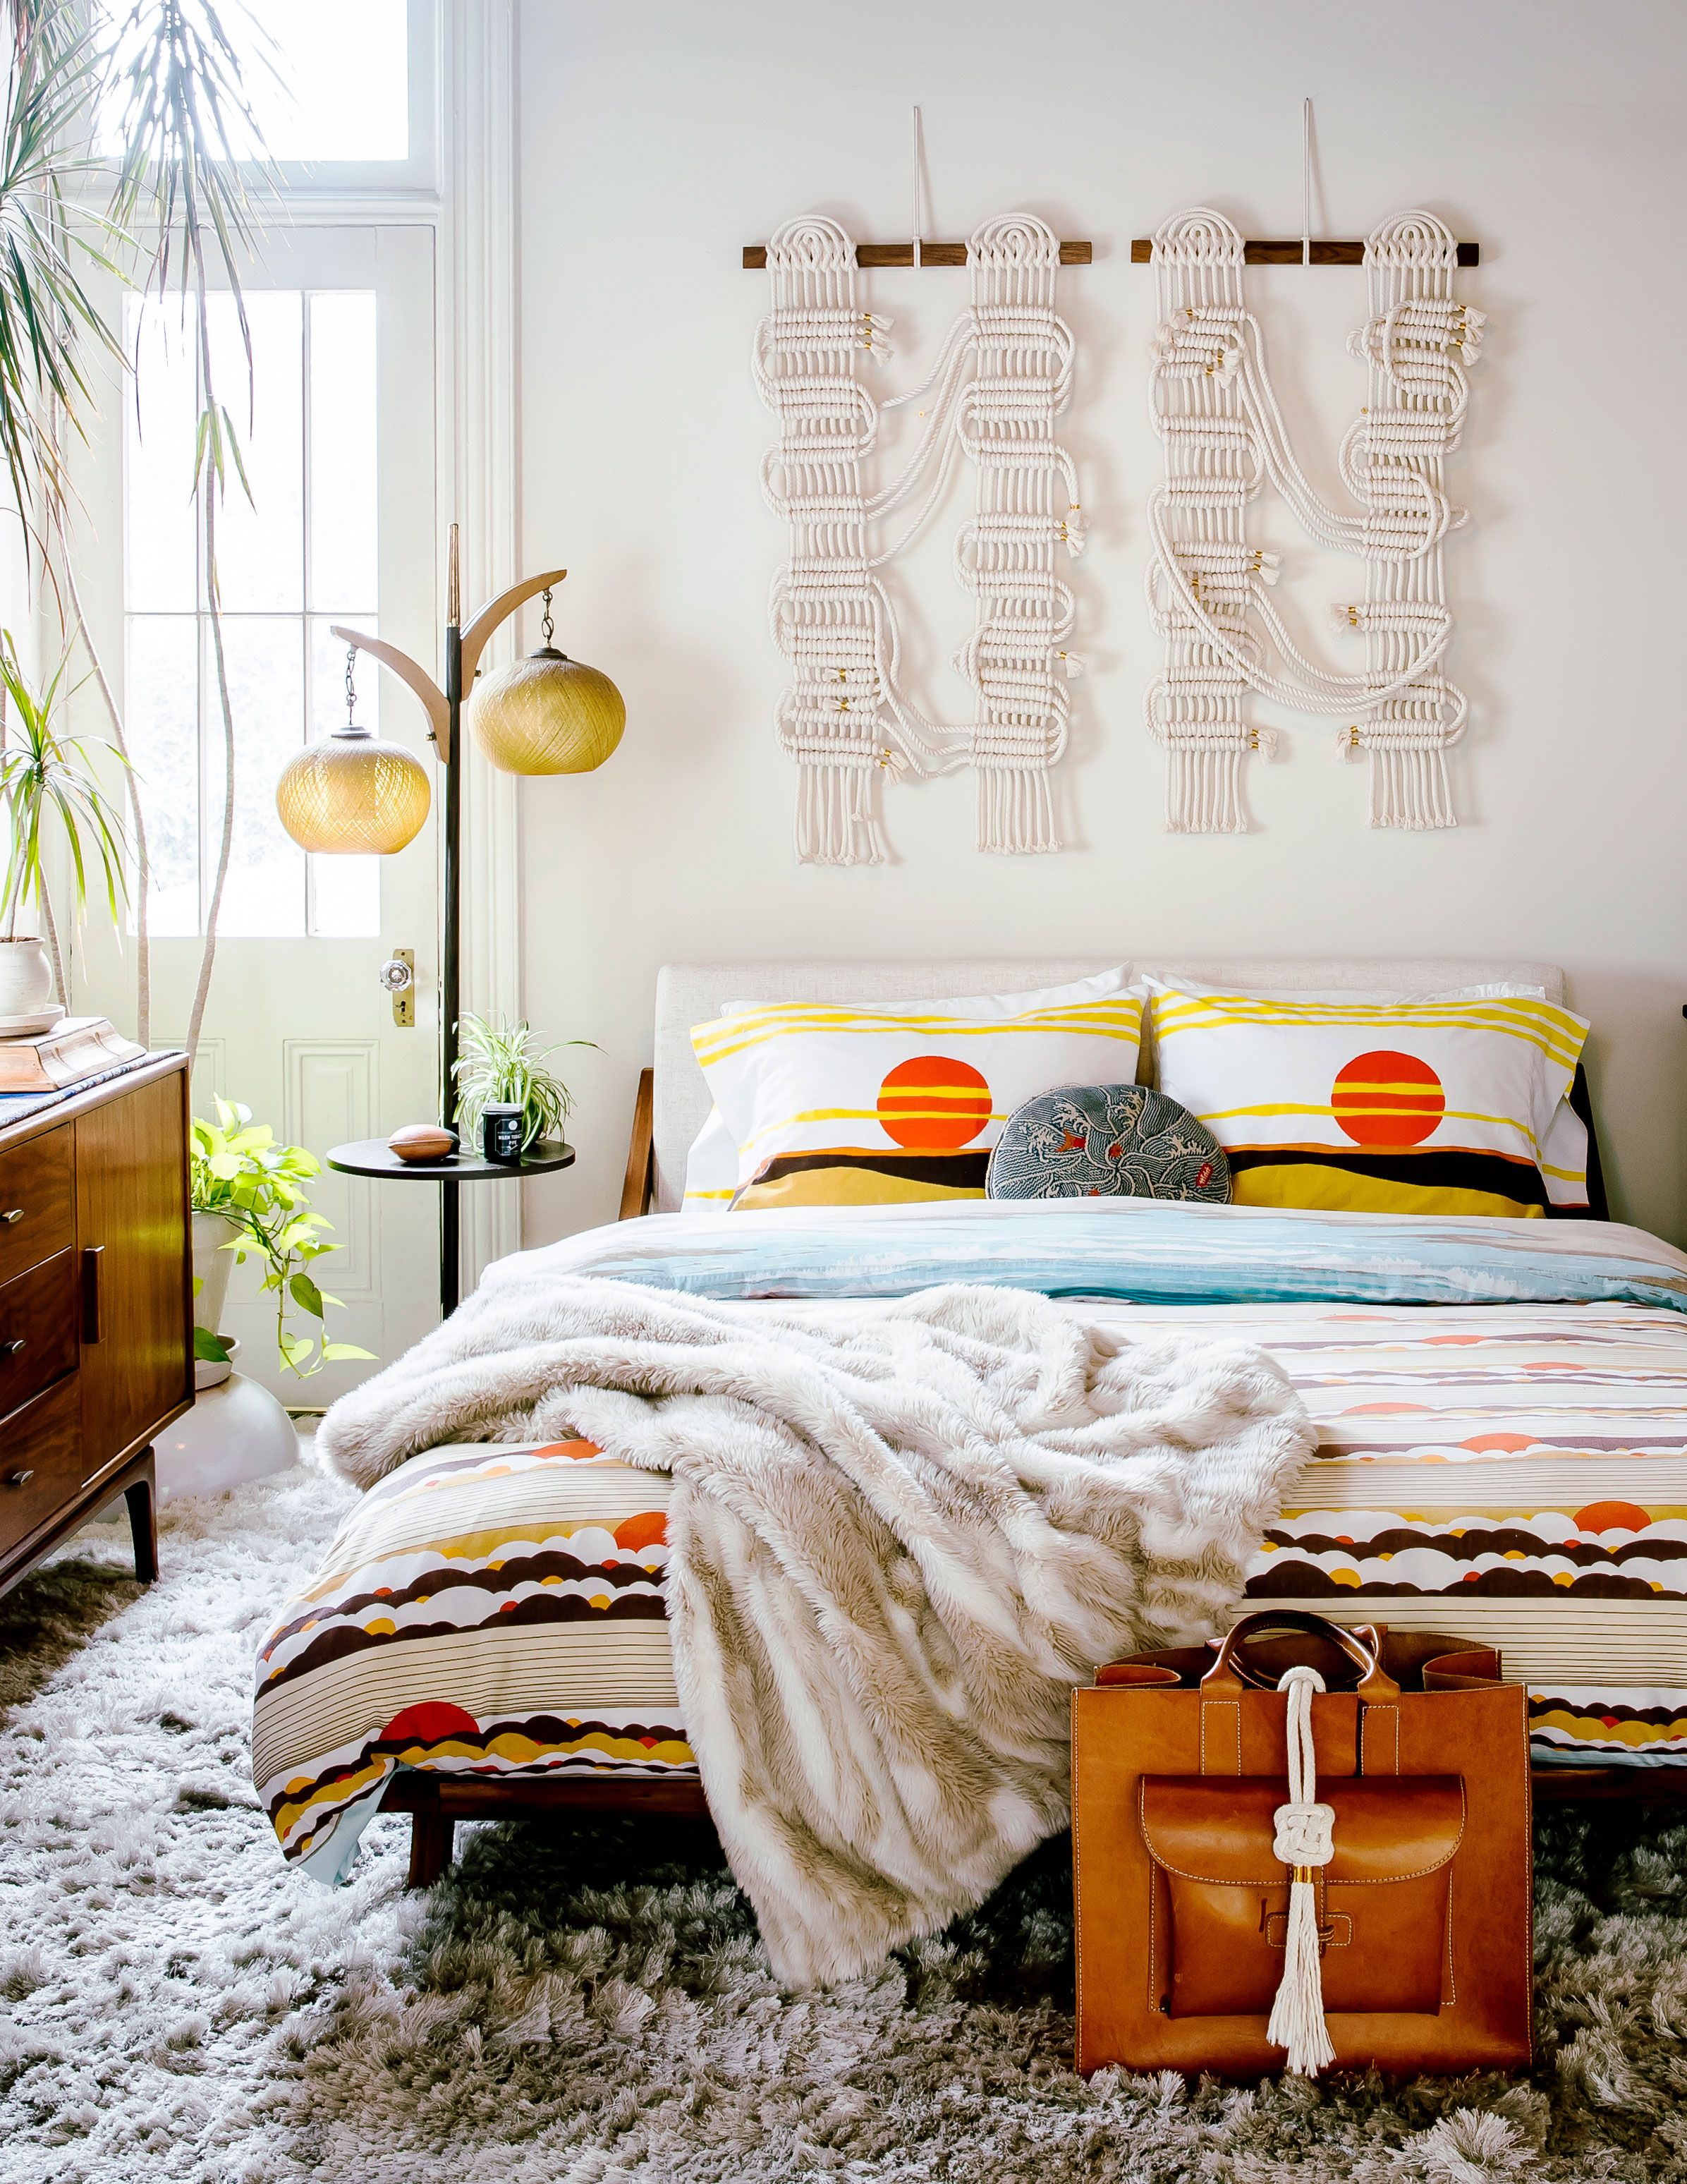 How To Make Art The Star In Your Home Decor | Modern Bohemian, Wall  Decorations And Decoration